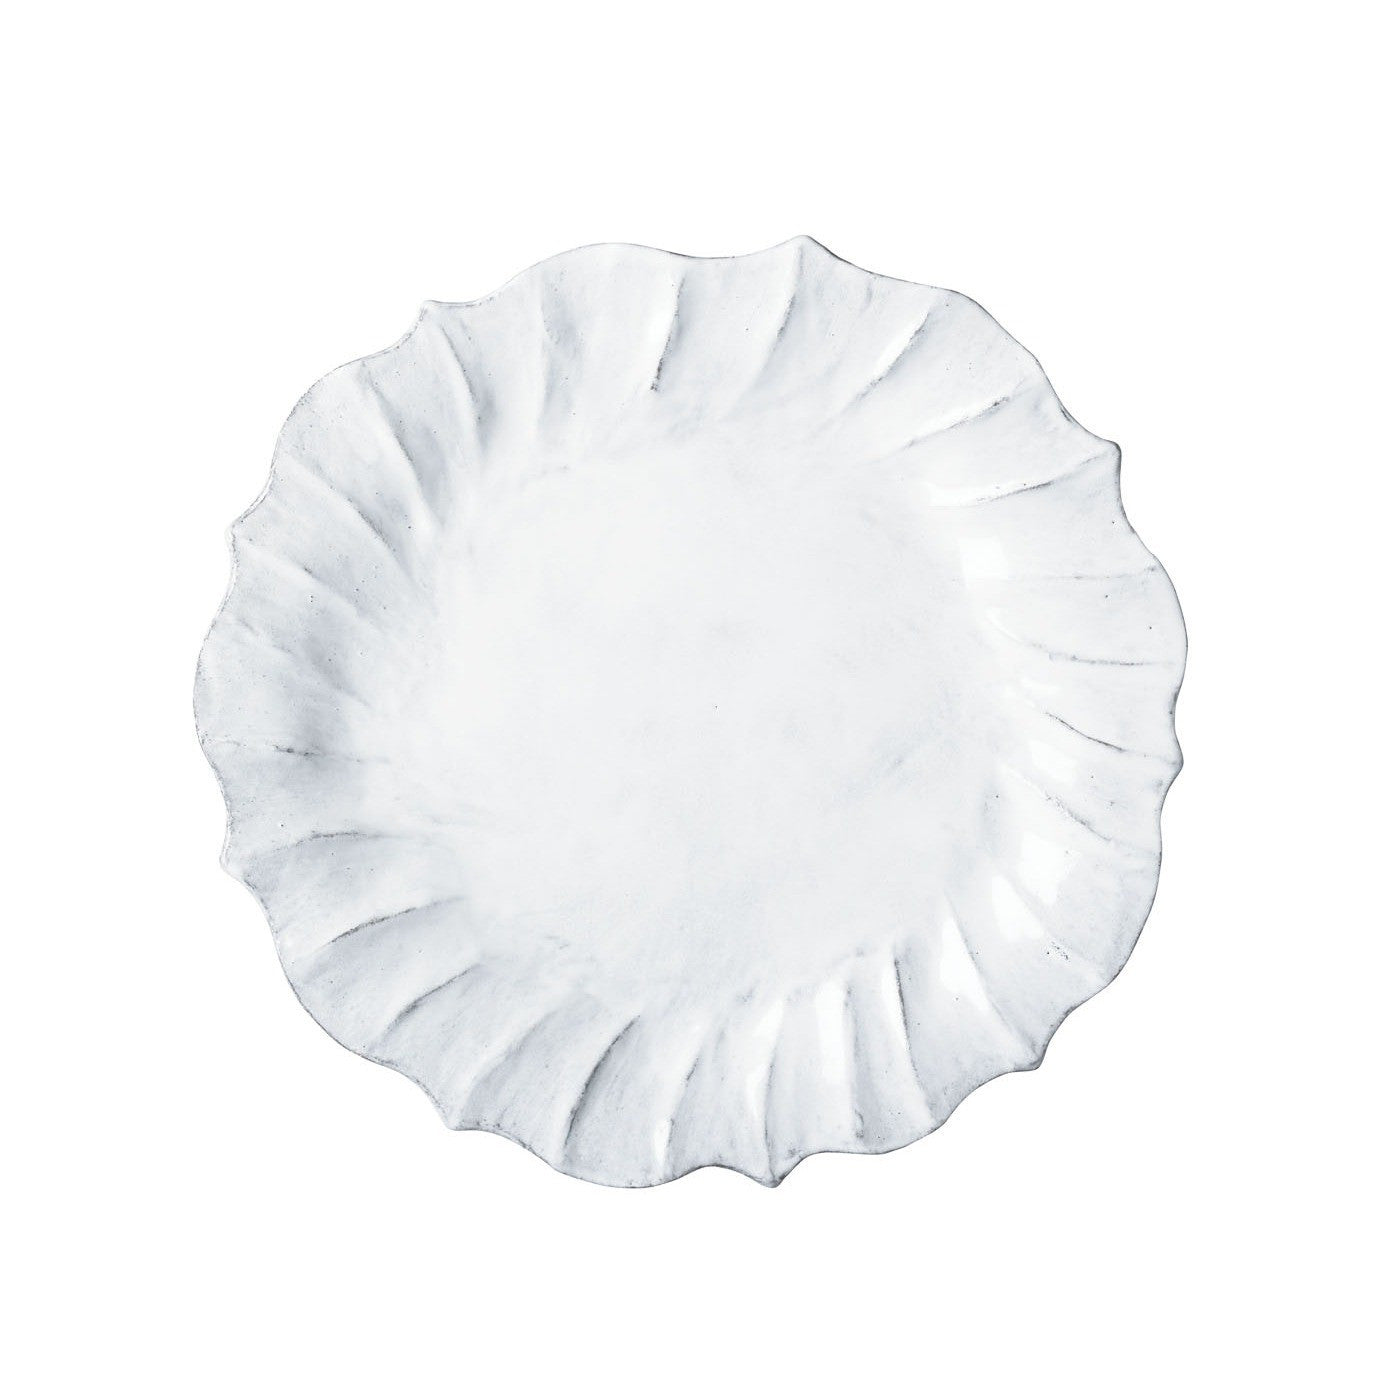 Incanto Ruffle Salad Plate - Set of 4 , tableware - Vietri, Pezzo Bello  - 1